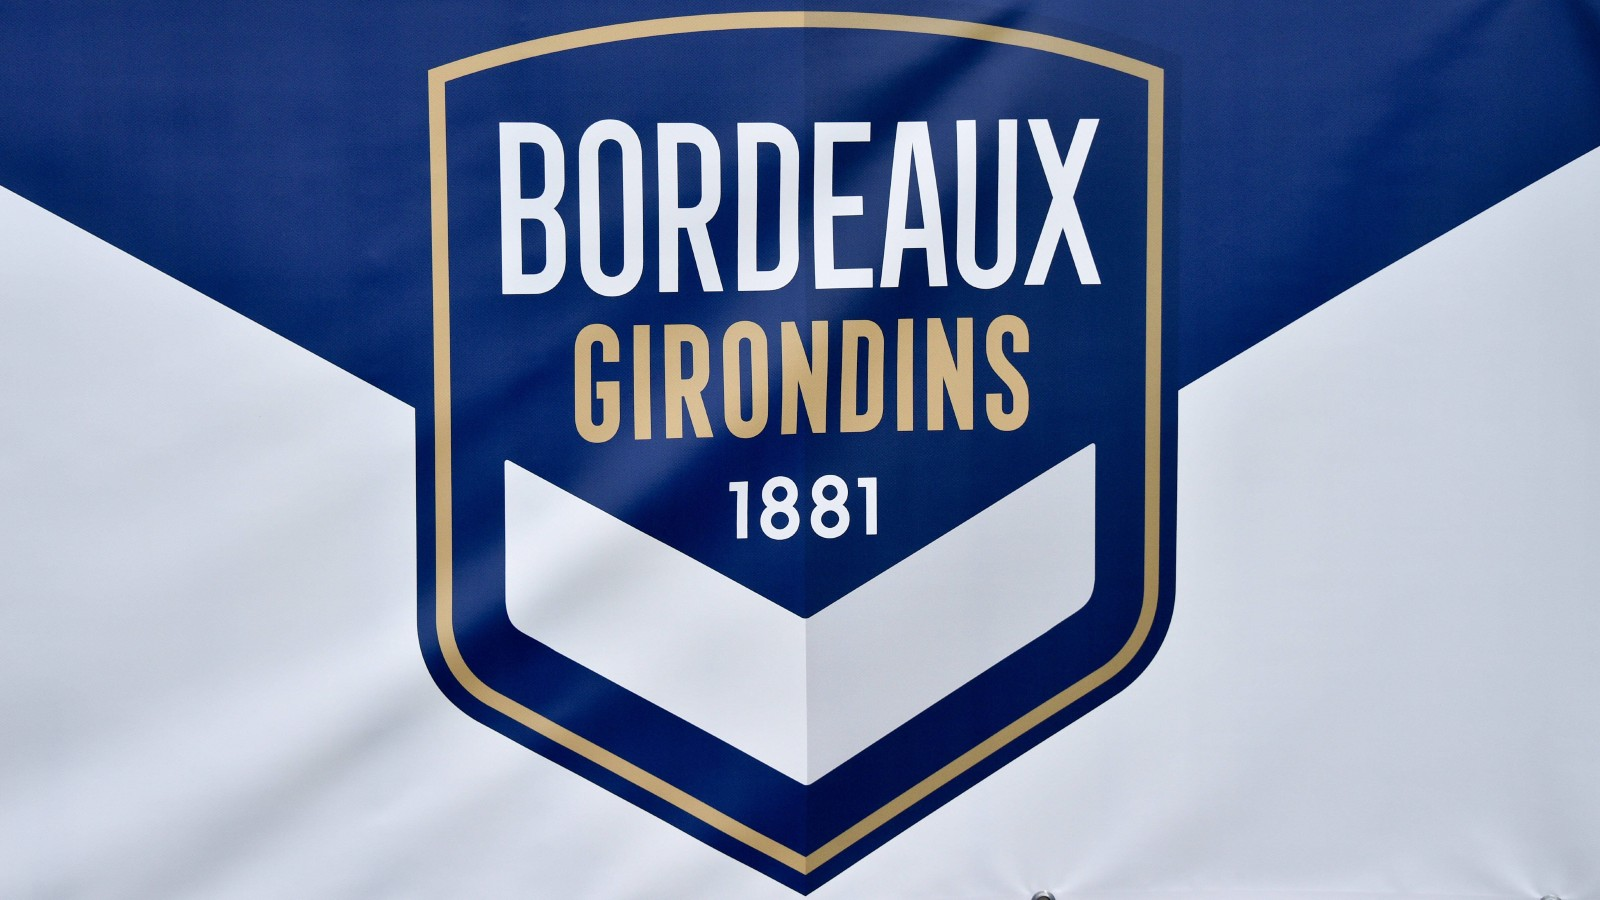 Escudo do Bordeaux